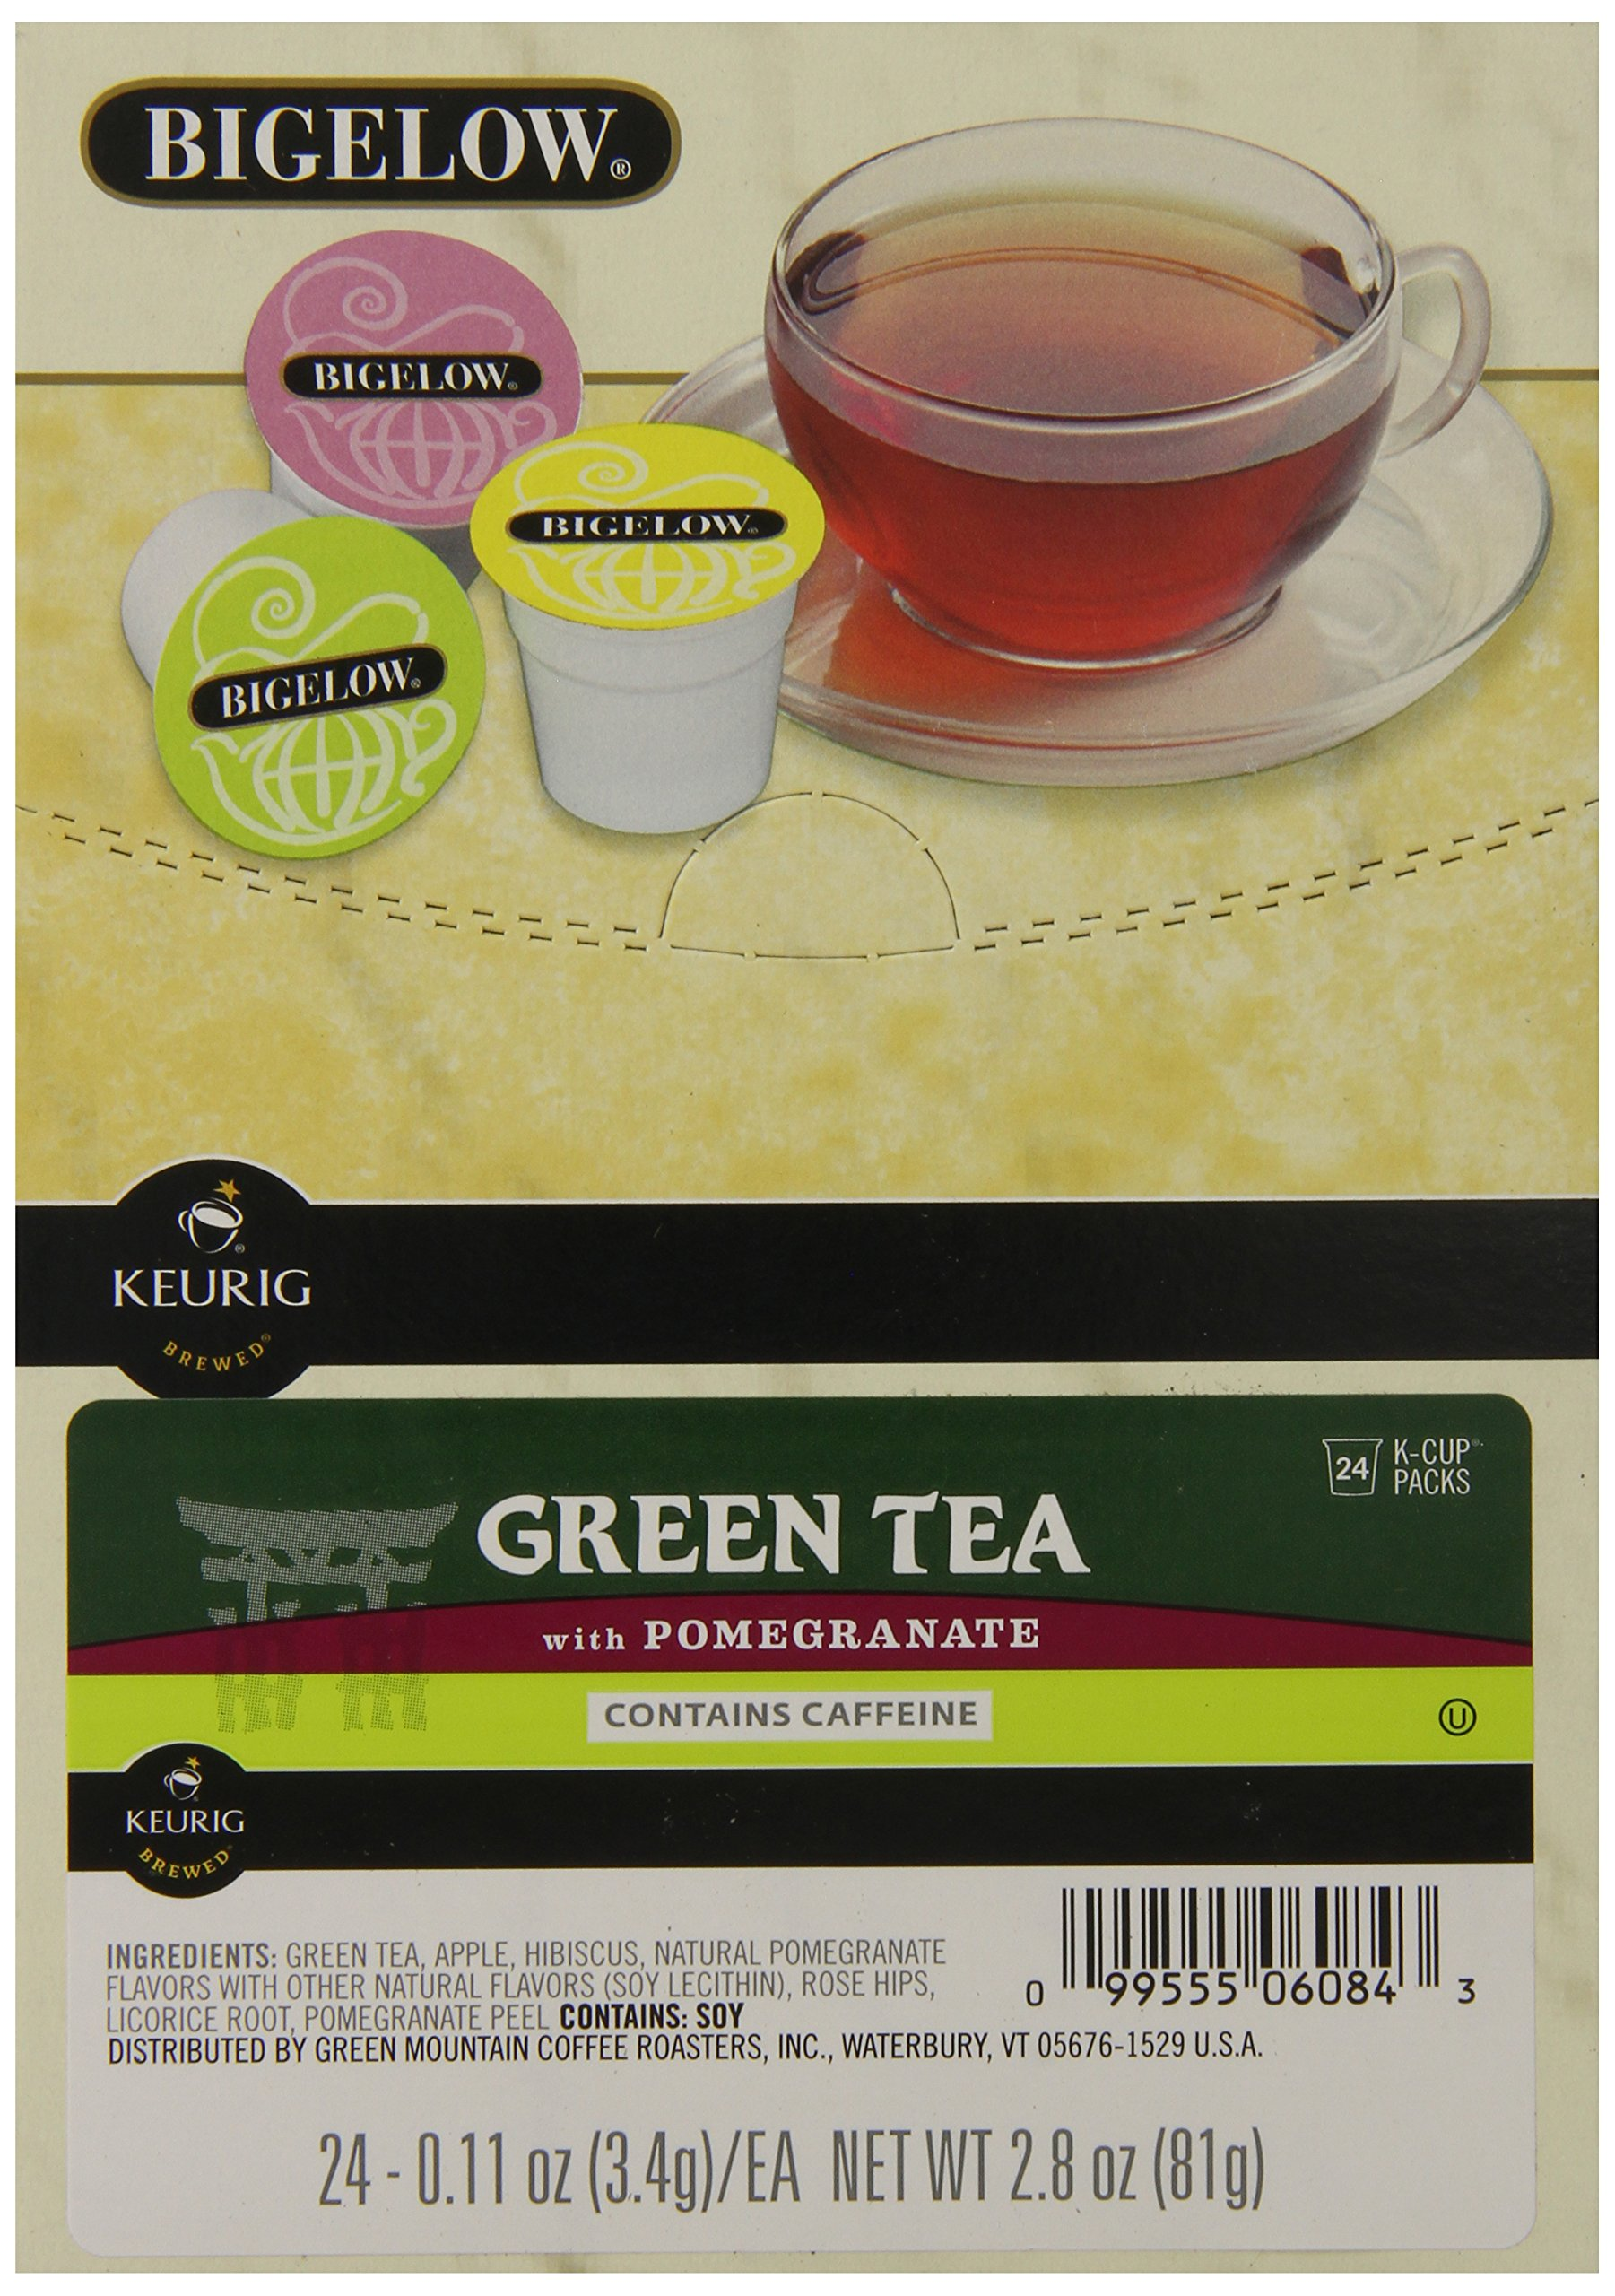 Bigelow Green Tea with Pomegranate, K-Cup Portion Pack for Keurig Brewers, 24-Count by Bigelow Tea